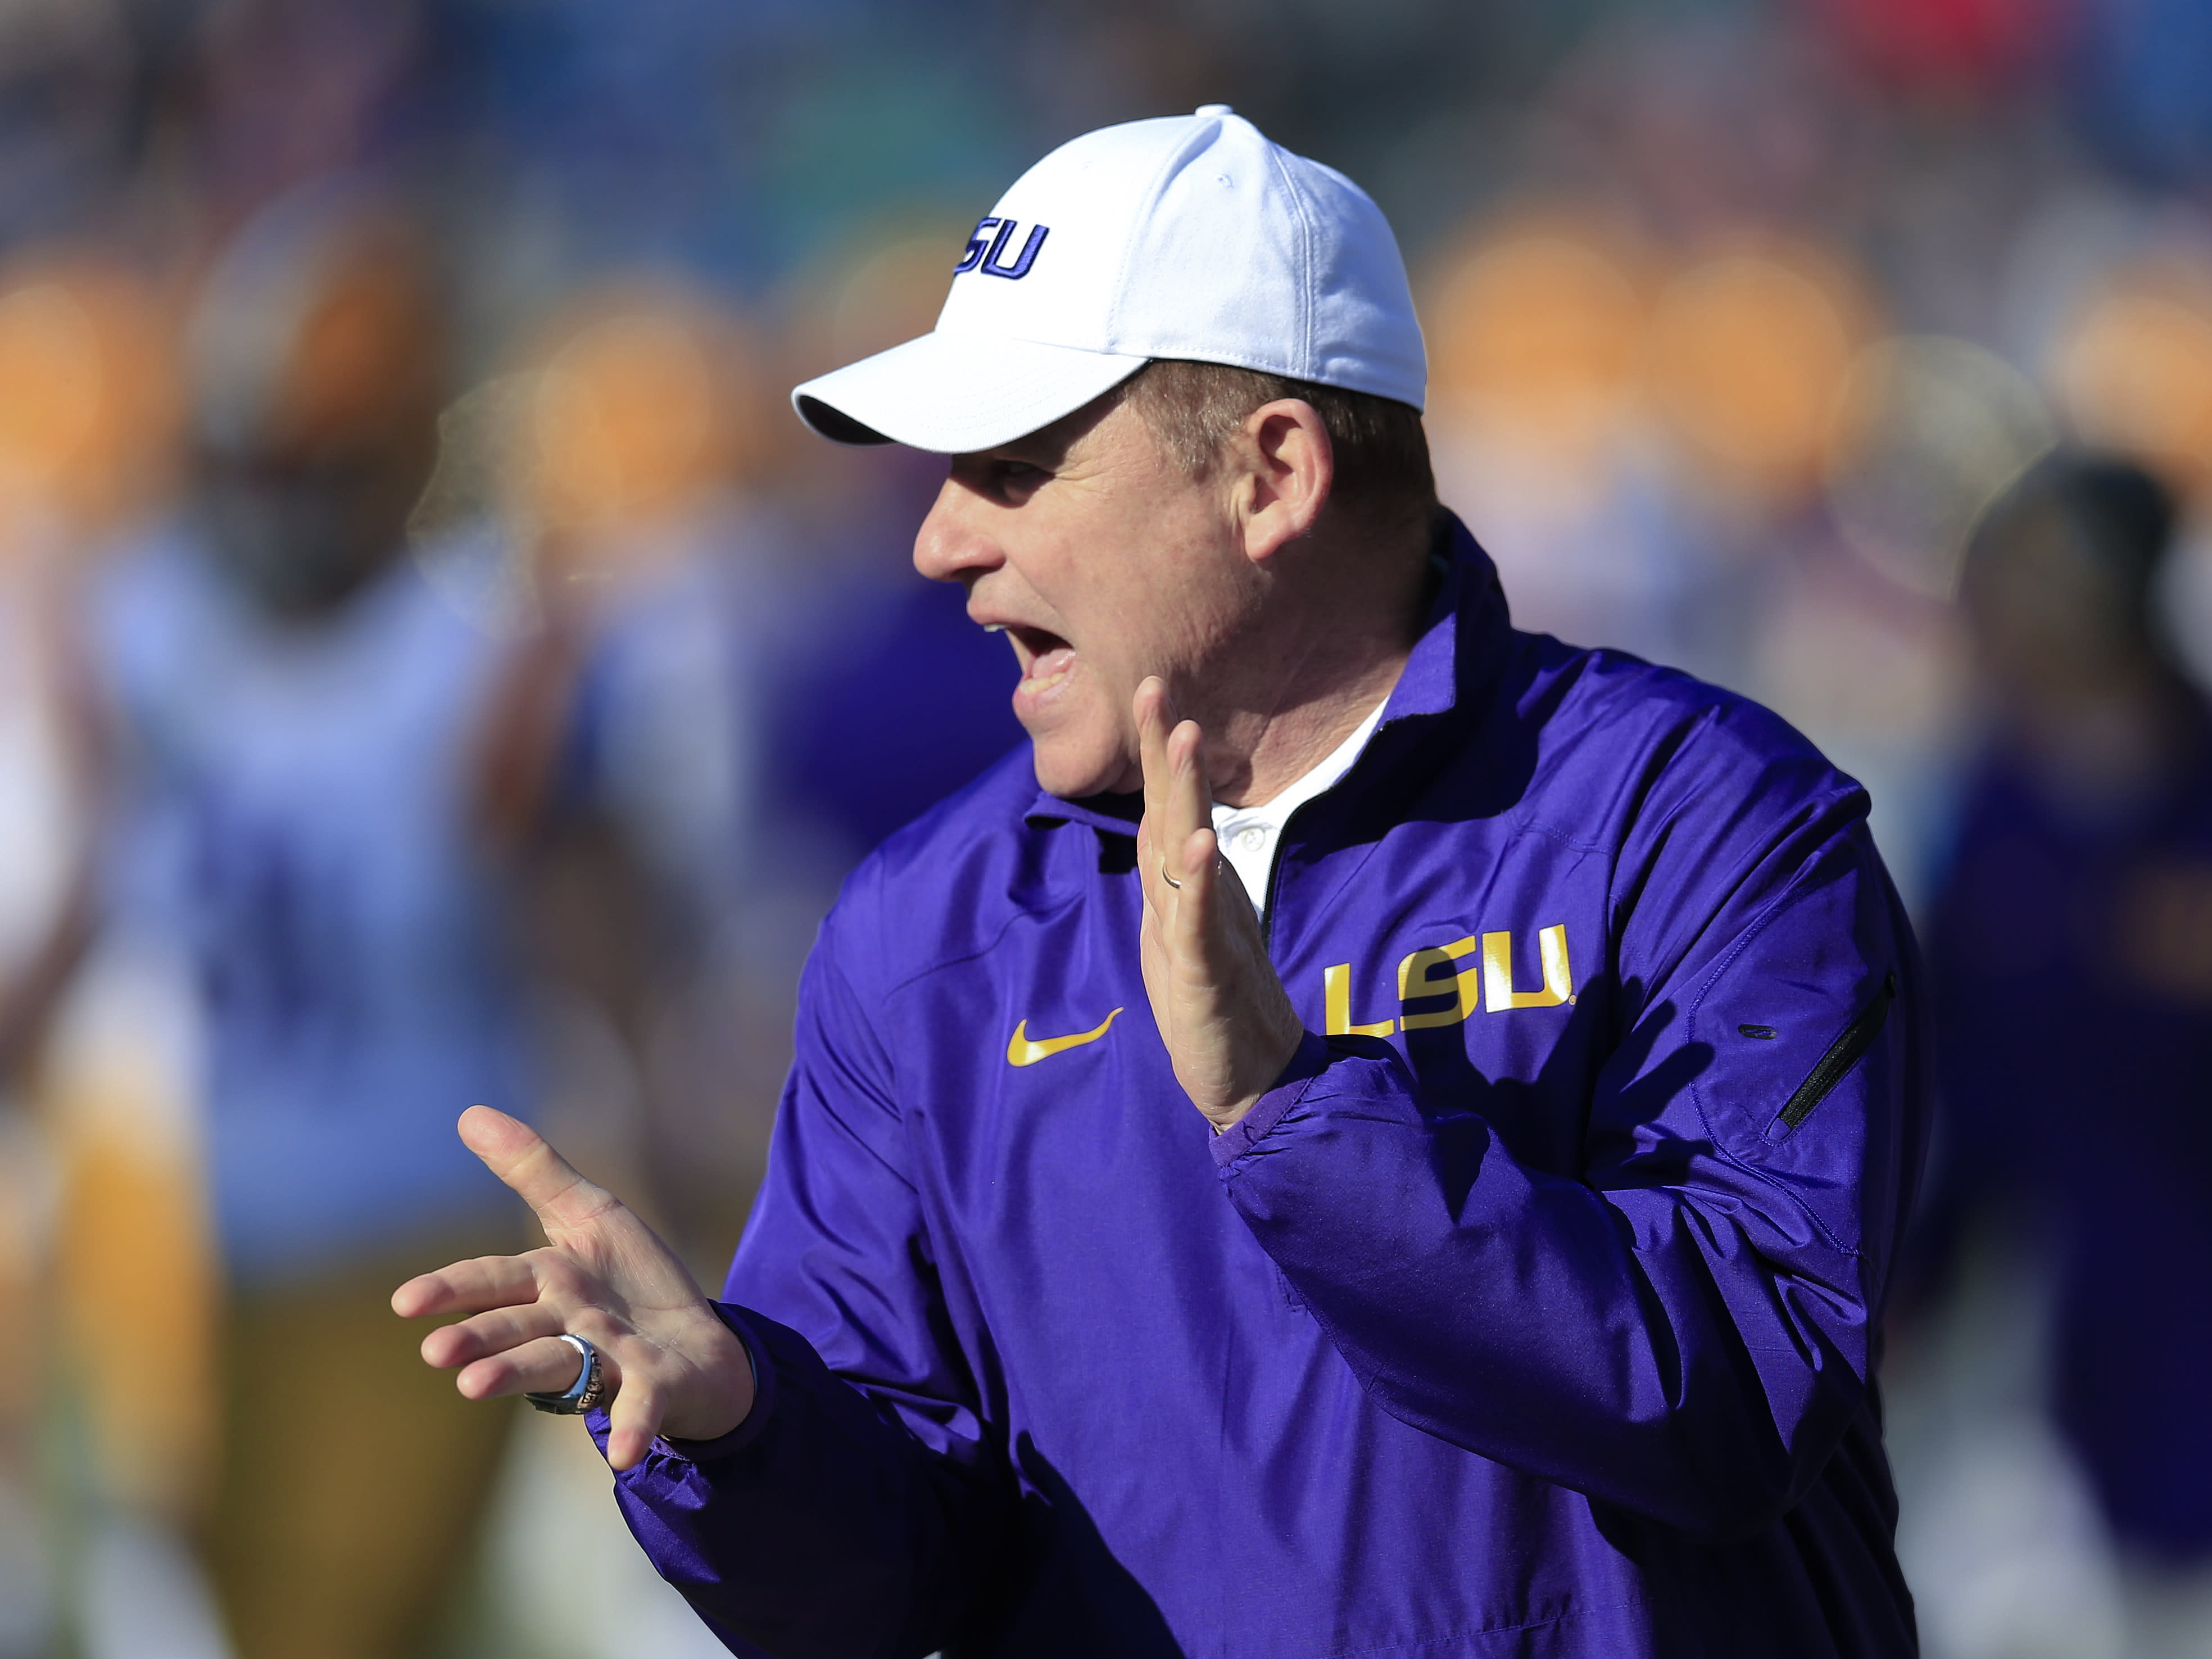 Report: LSU can't sign early enrollees to financial aid agreements for 2 years